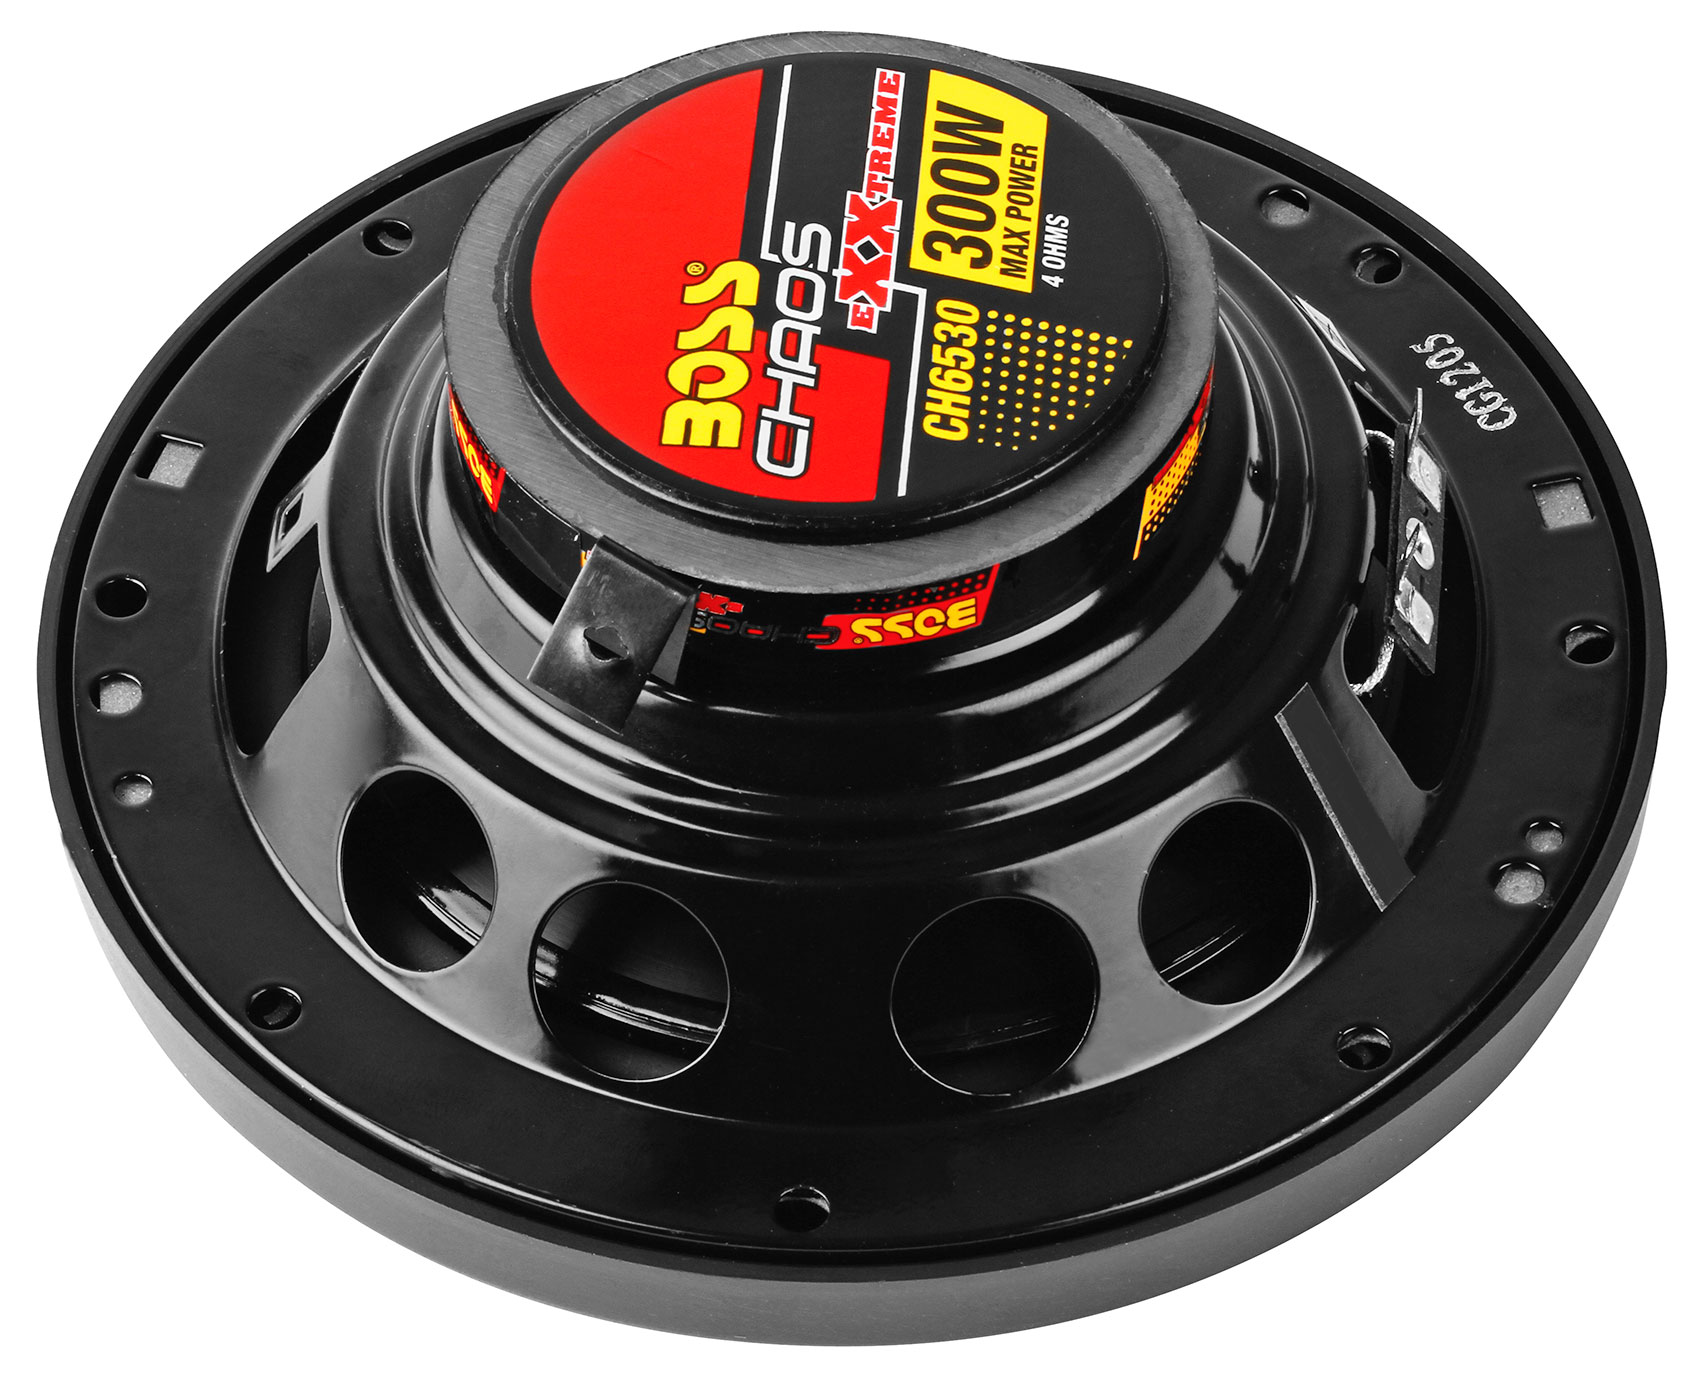 """4 Boss Speakers 2 CH6940 6.5/"""" 3-Way /& 2 CH6530 6x9/"""" 4-Way Chaos Car Speakers"""